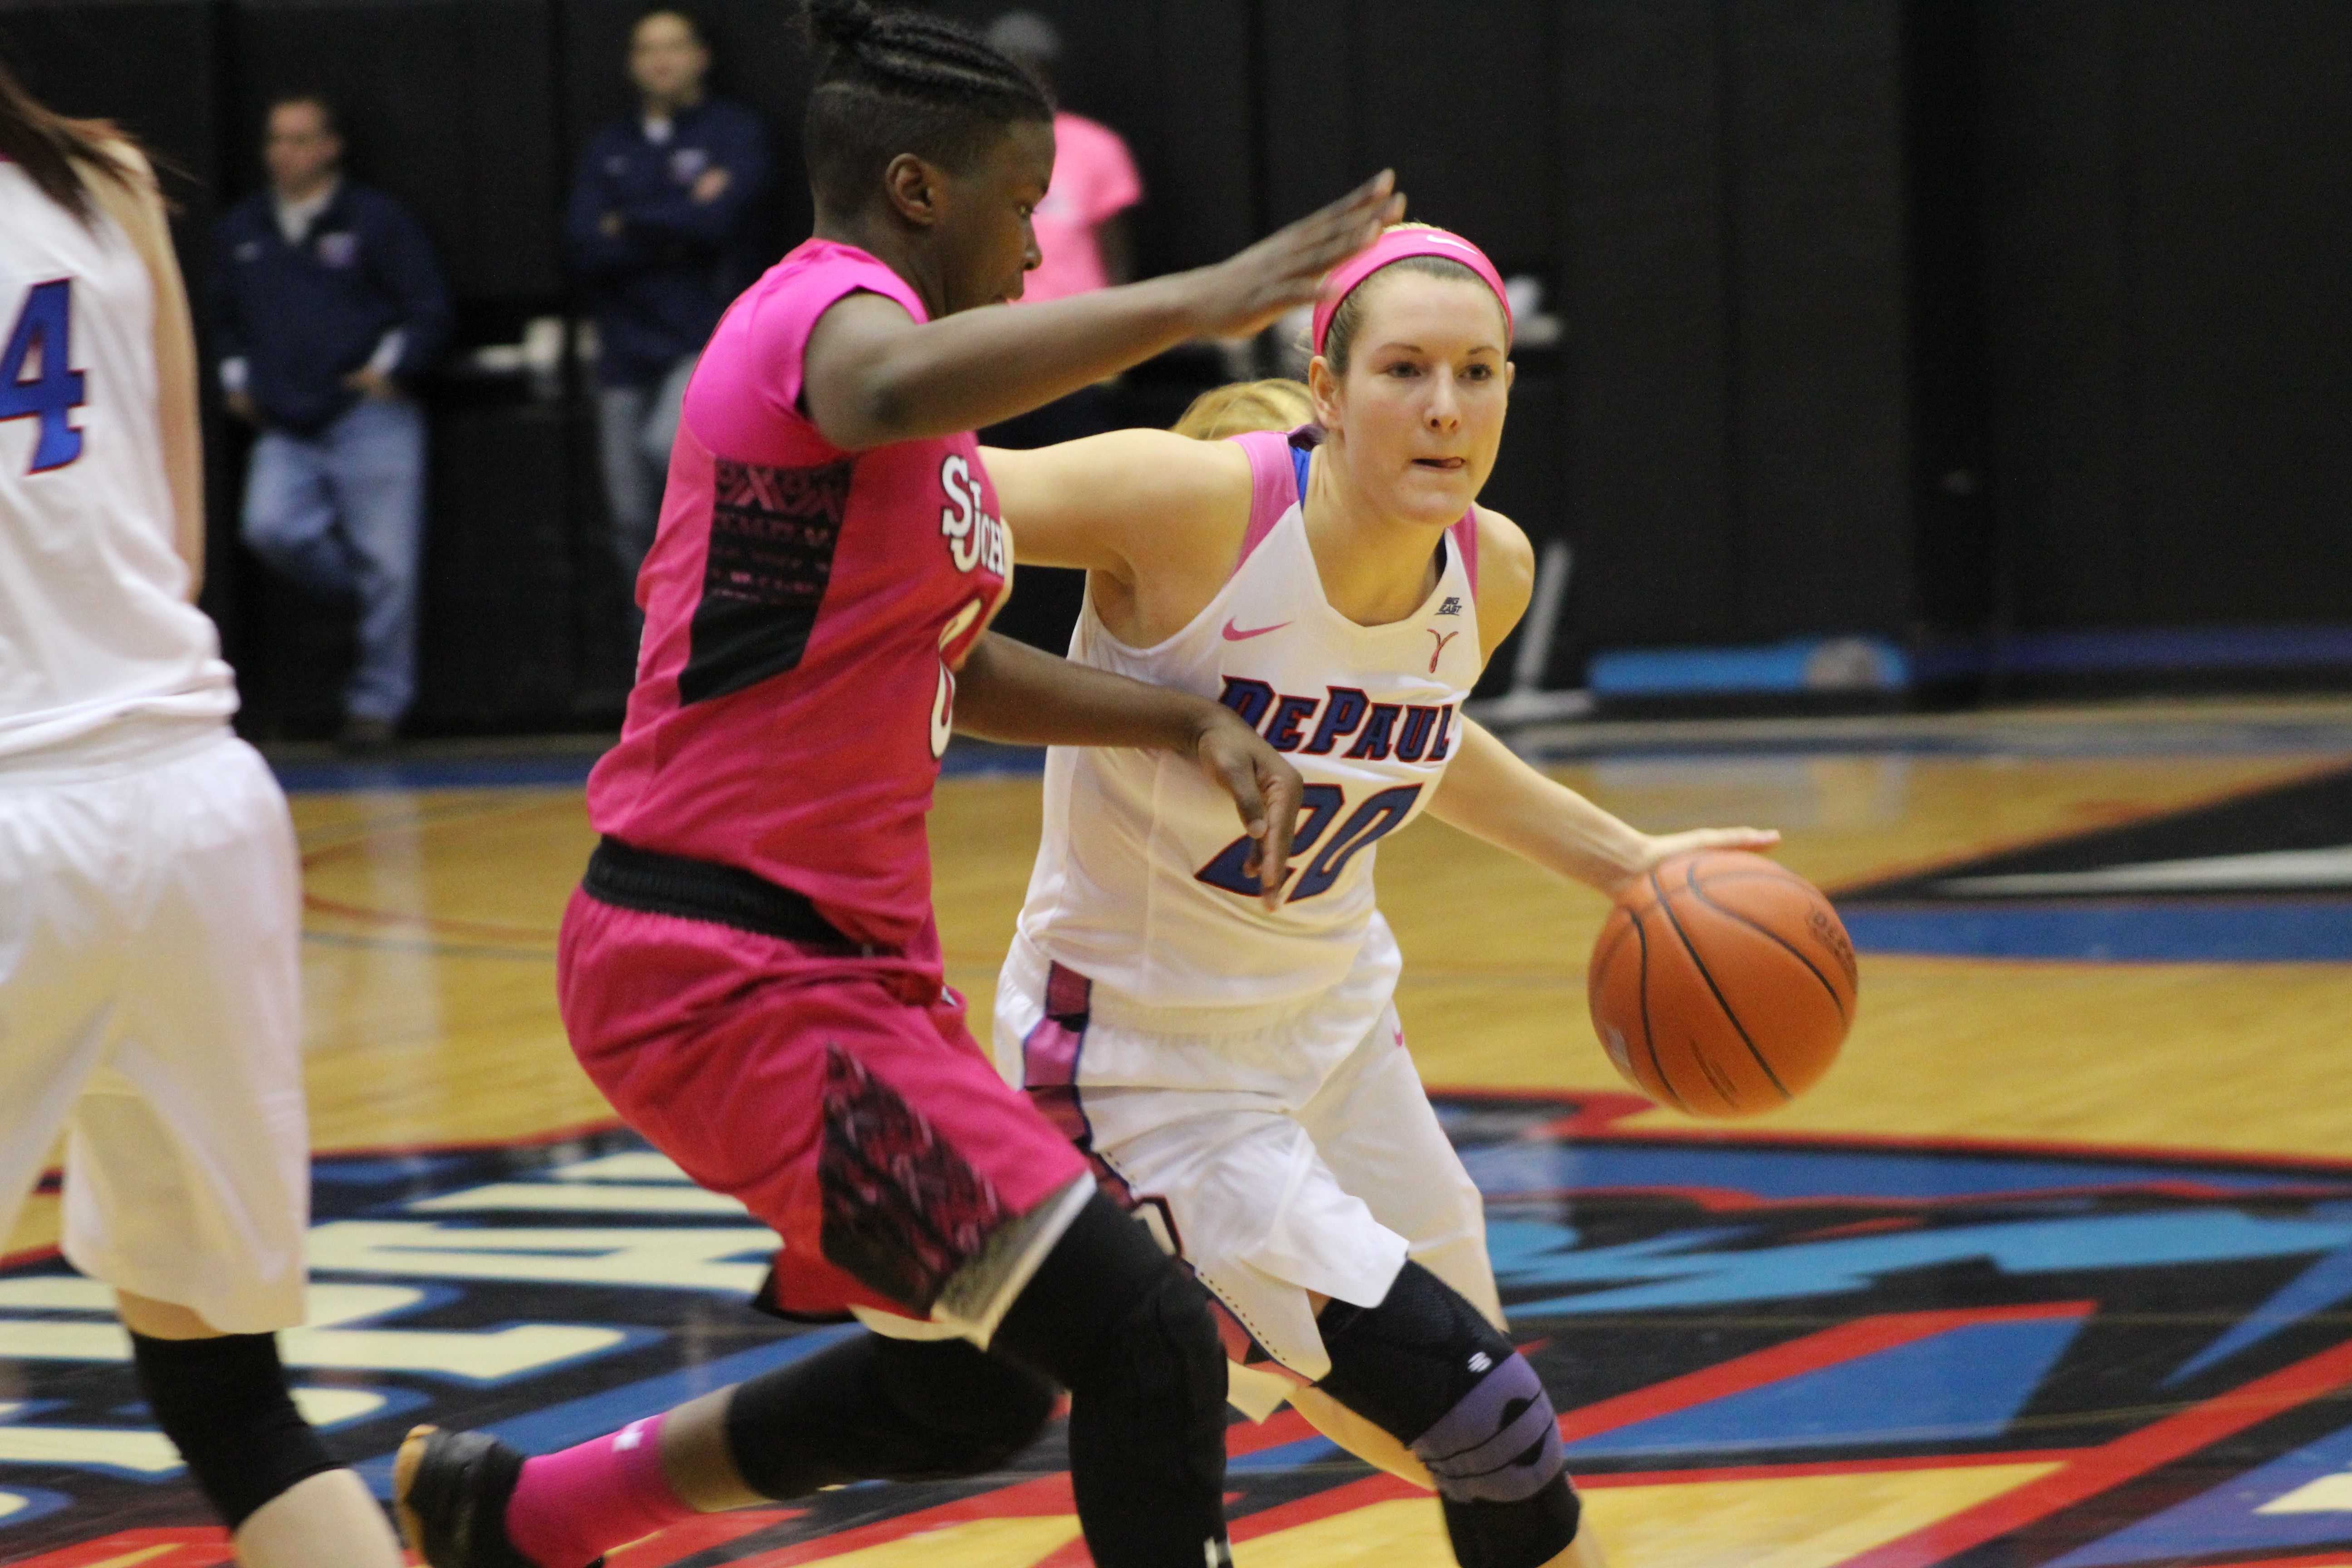 Kelly Campbell drives the ball in the lane in Friday night's matchup against St. Johns (CAROLINE STACEY | THE DEPAULIA)